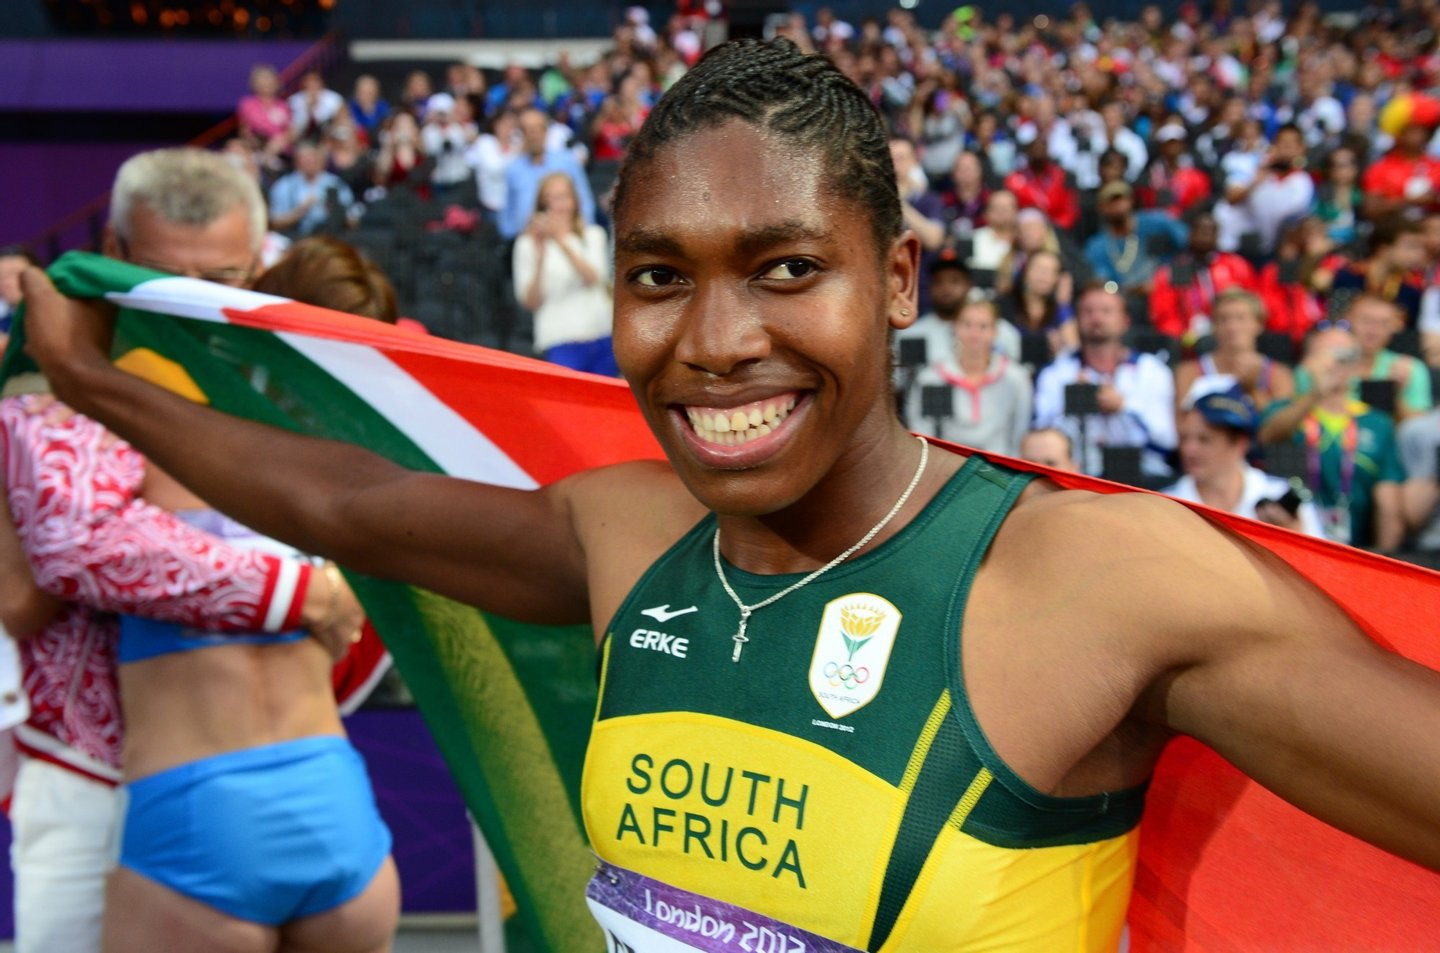 South Africa's Caster Semenya silver medalist celebrates after the women's 800m final at the athletics event of the London 2012 Olympic Games on August 11, 2012 in London.  AFP PHOTO / FRANCK FIFE        (Photo credit should read FRANCK FIFE/AFP/GettyImages)